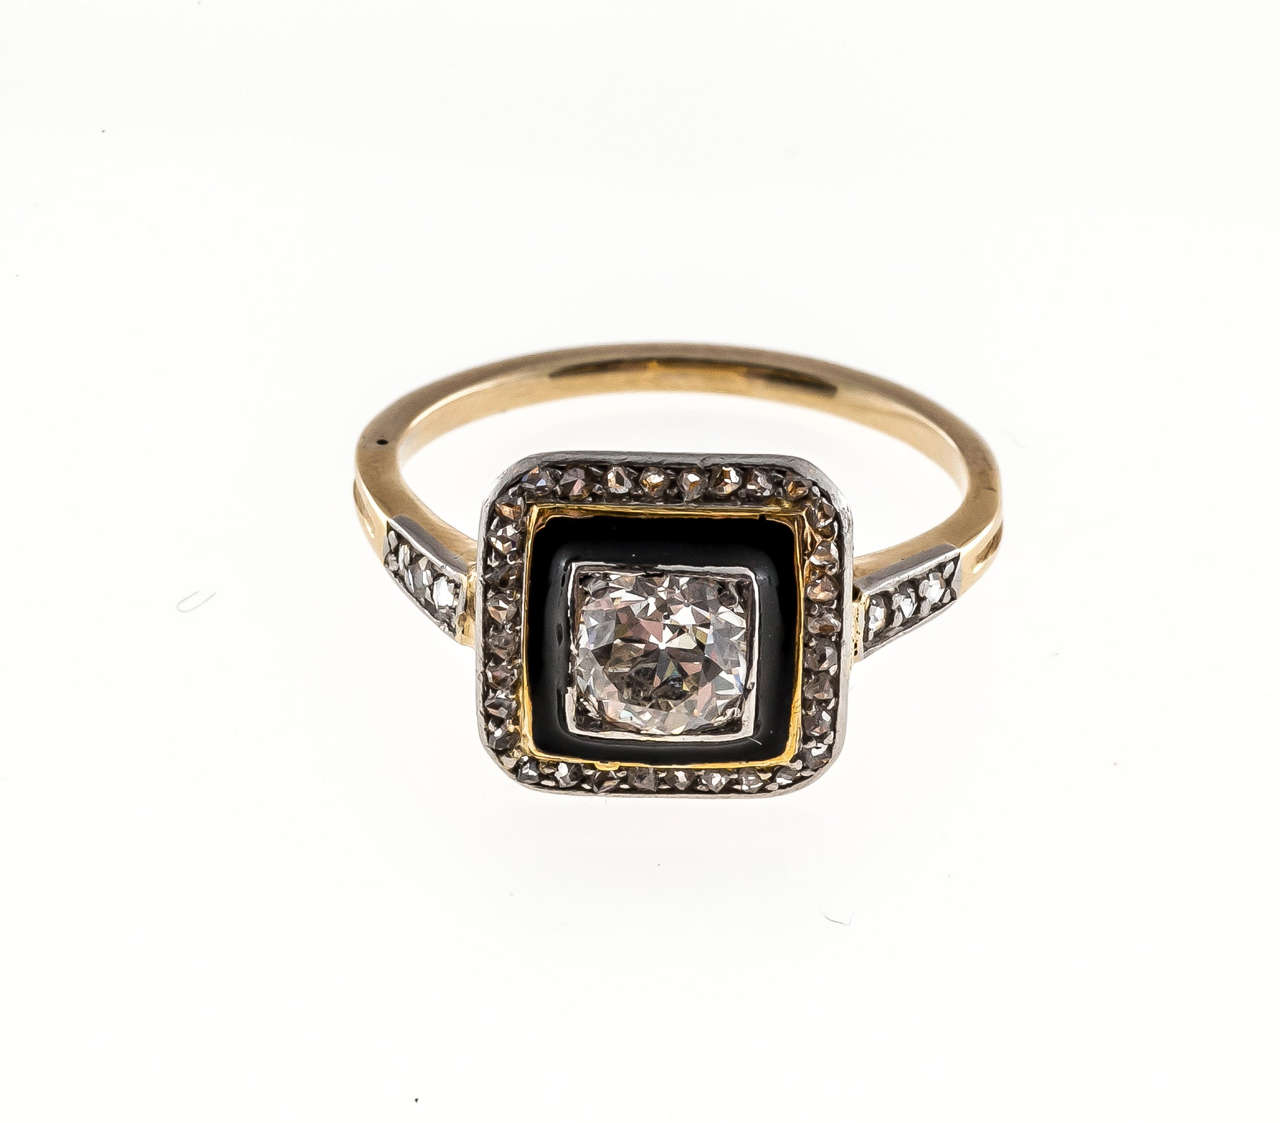 The shoulders and outer rim are set with all original rose cut diamonds.  The center is set with a beautiful well cut European cut diamond.  Around the center diamond is a black enamel rim.  This makes for a striking Art Deco Design.  Very good